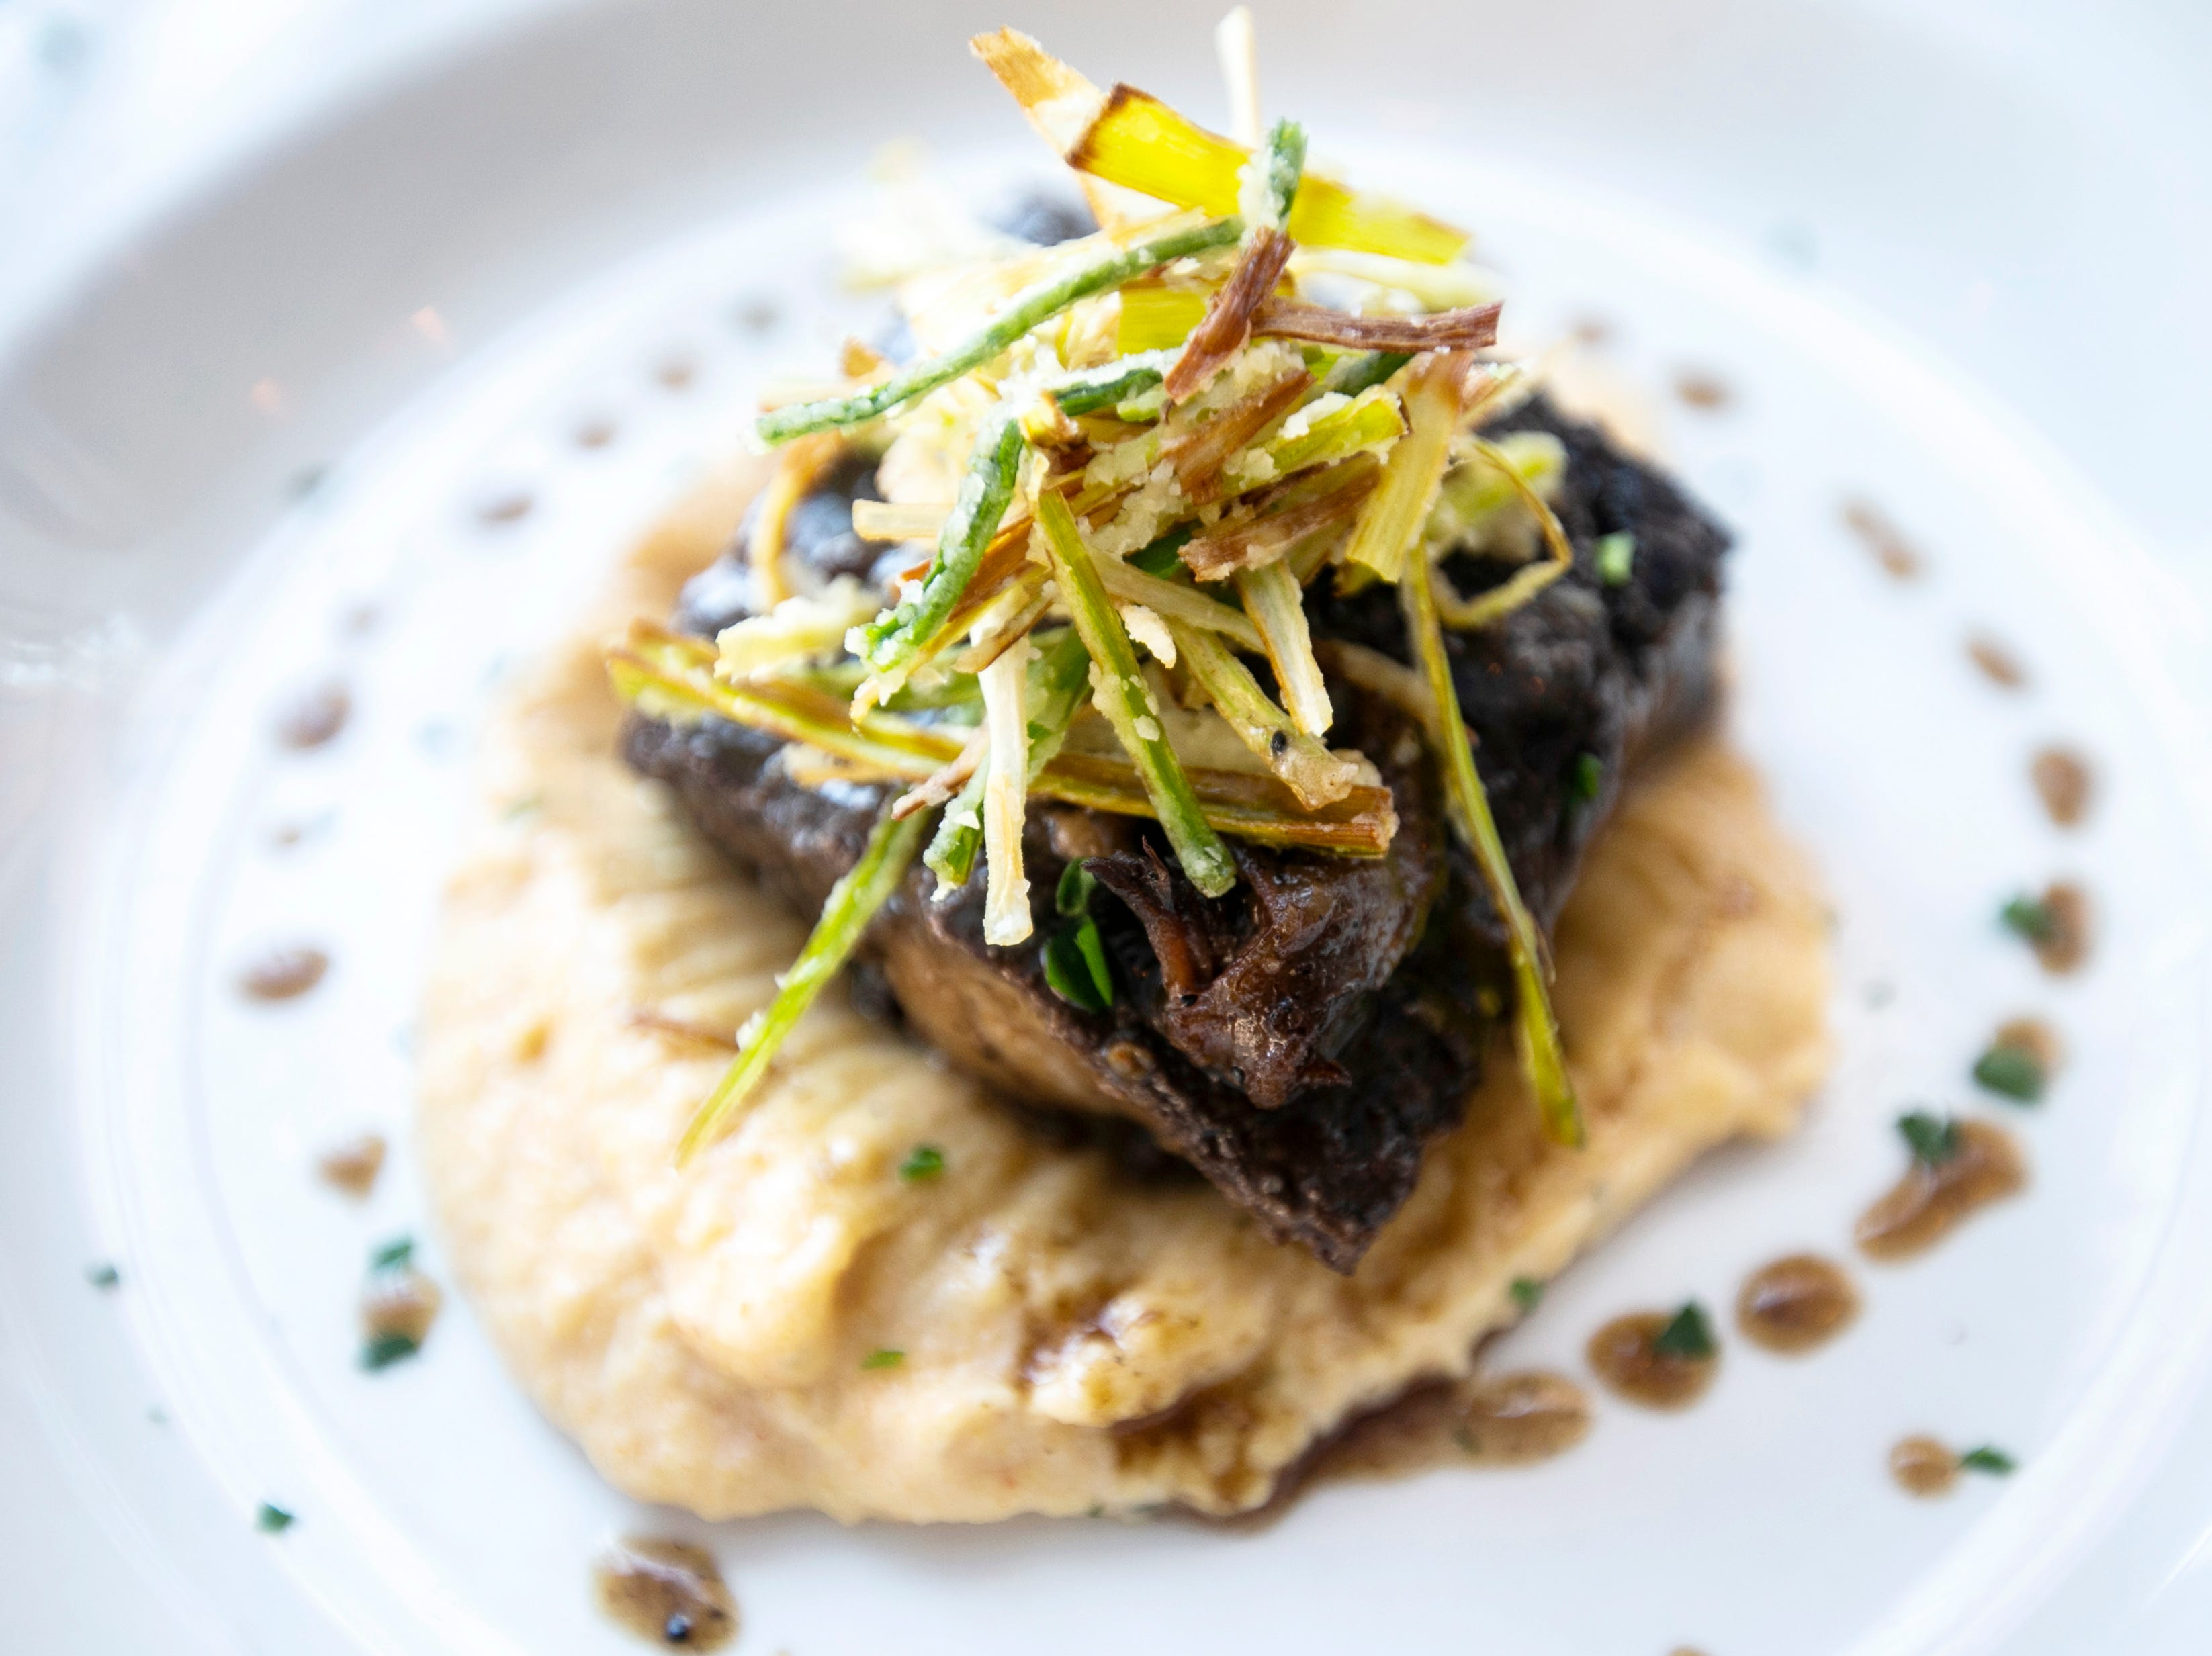 Braised short ribs are seen on Wednesday, Jan. 23, 2019, at Linn Street Dive in Iowa City, Iowa. The entrée is served with anson mills creamy stone-ground polenta and leek frittes.